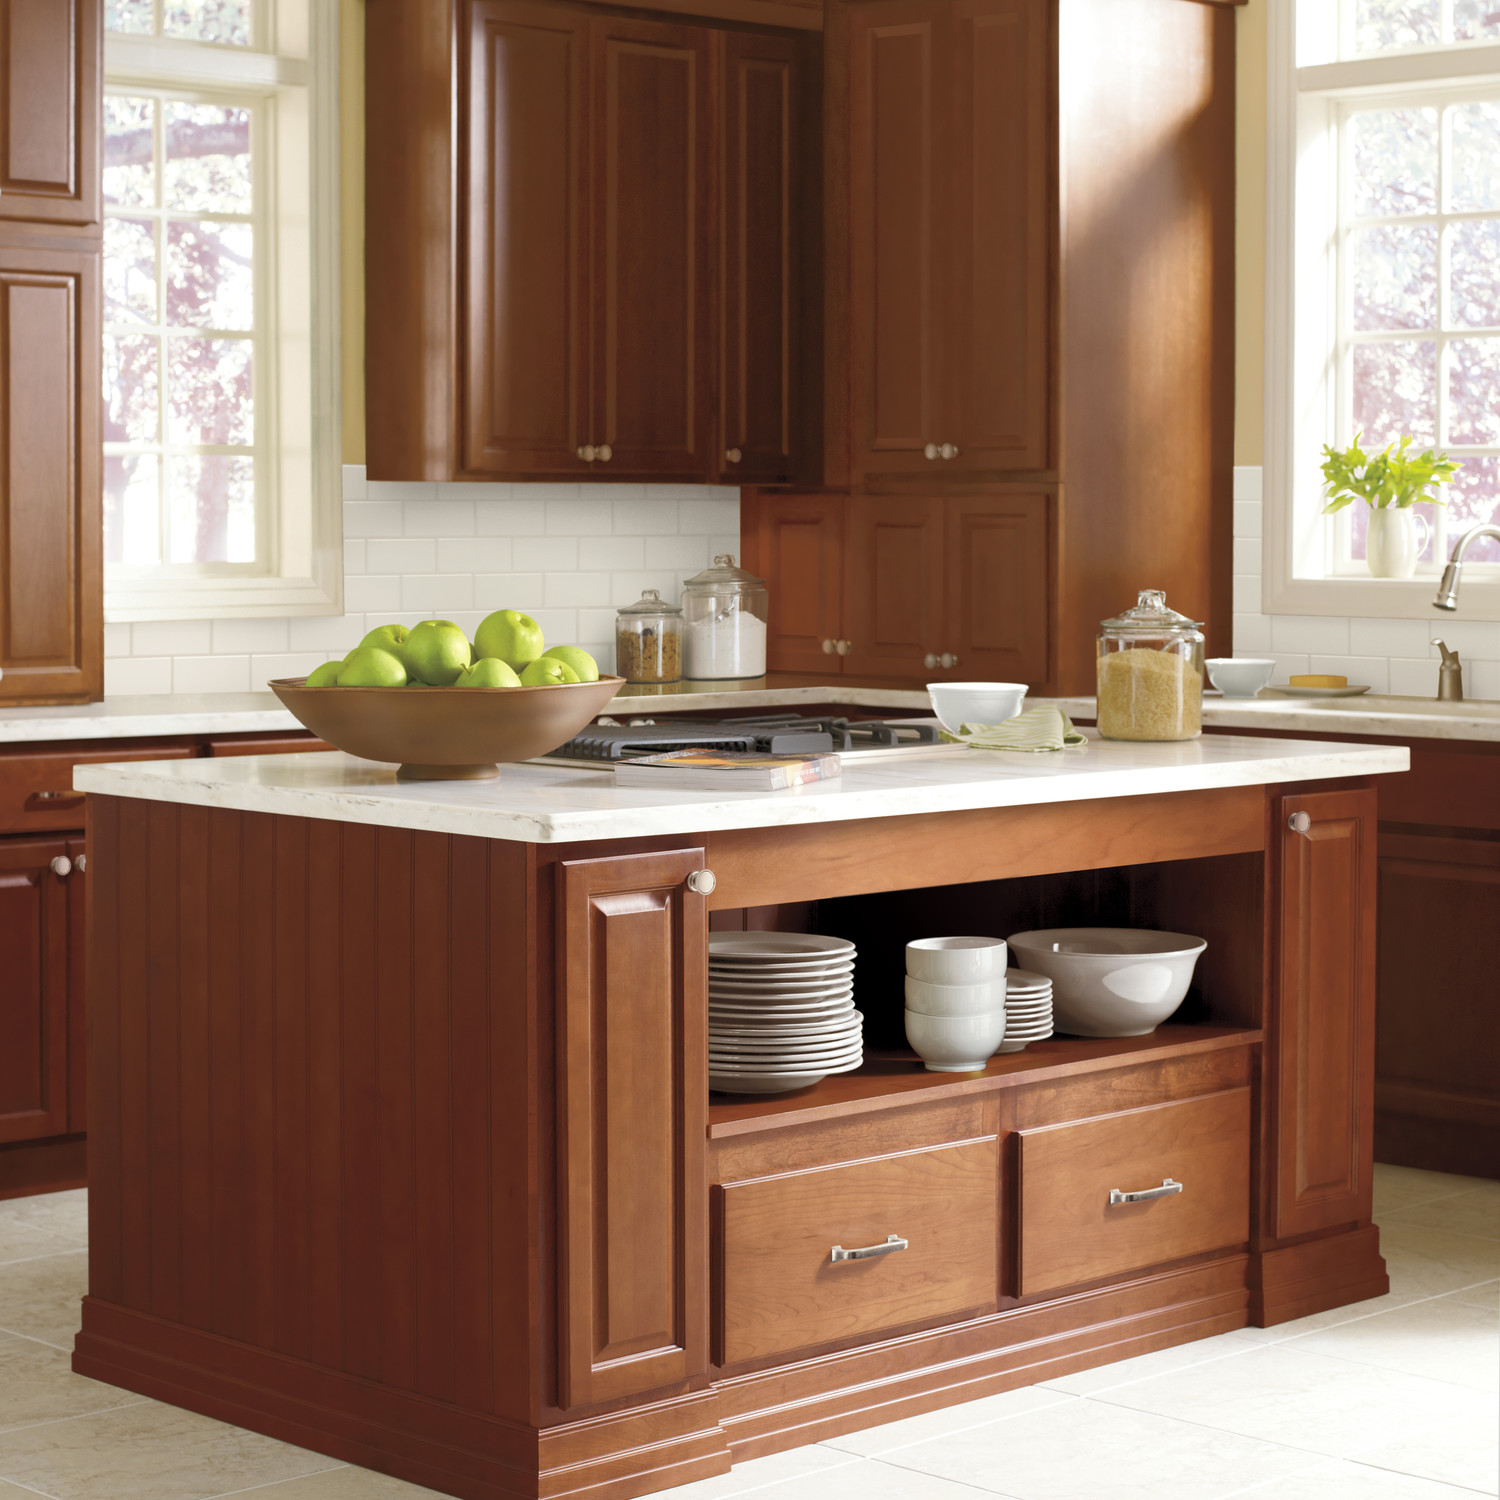 Choosing Kitchen Cabinets: 14 Things You Need To Know